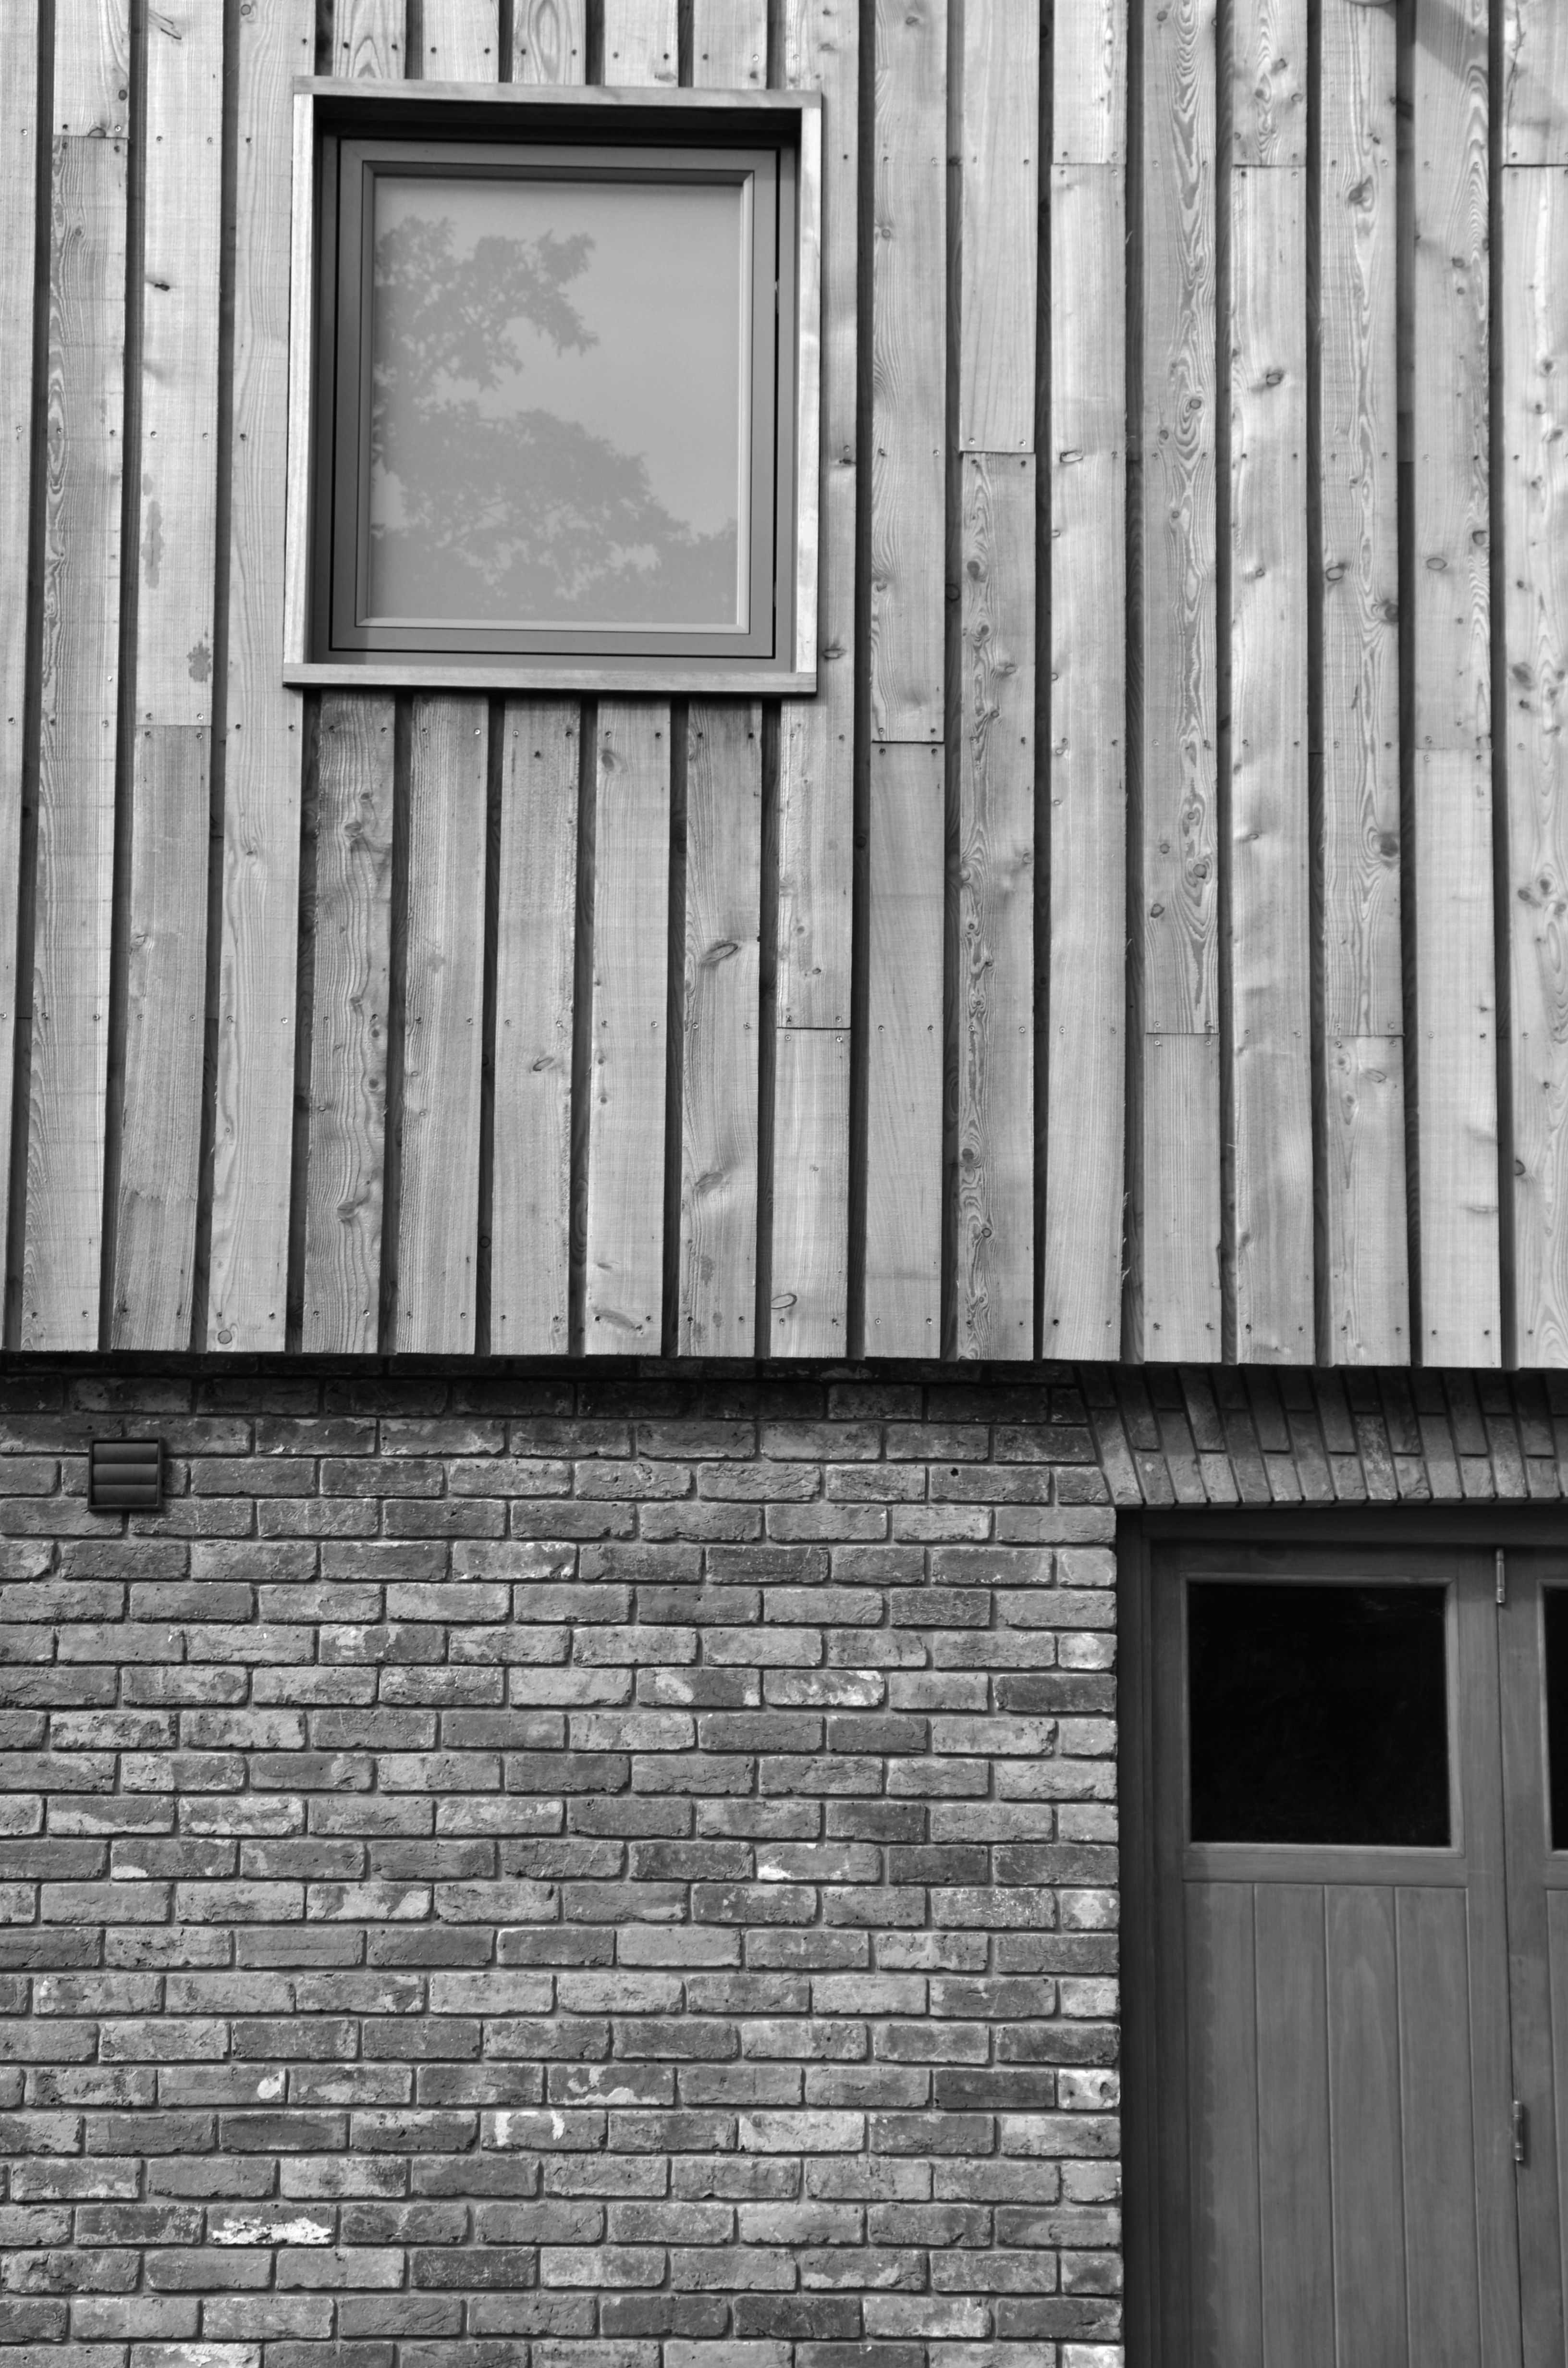 H2 102 Wood Weatherboarding Siberian Larch Cladding Mg